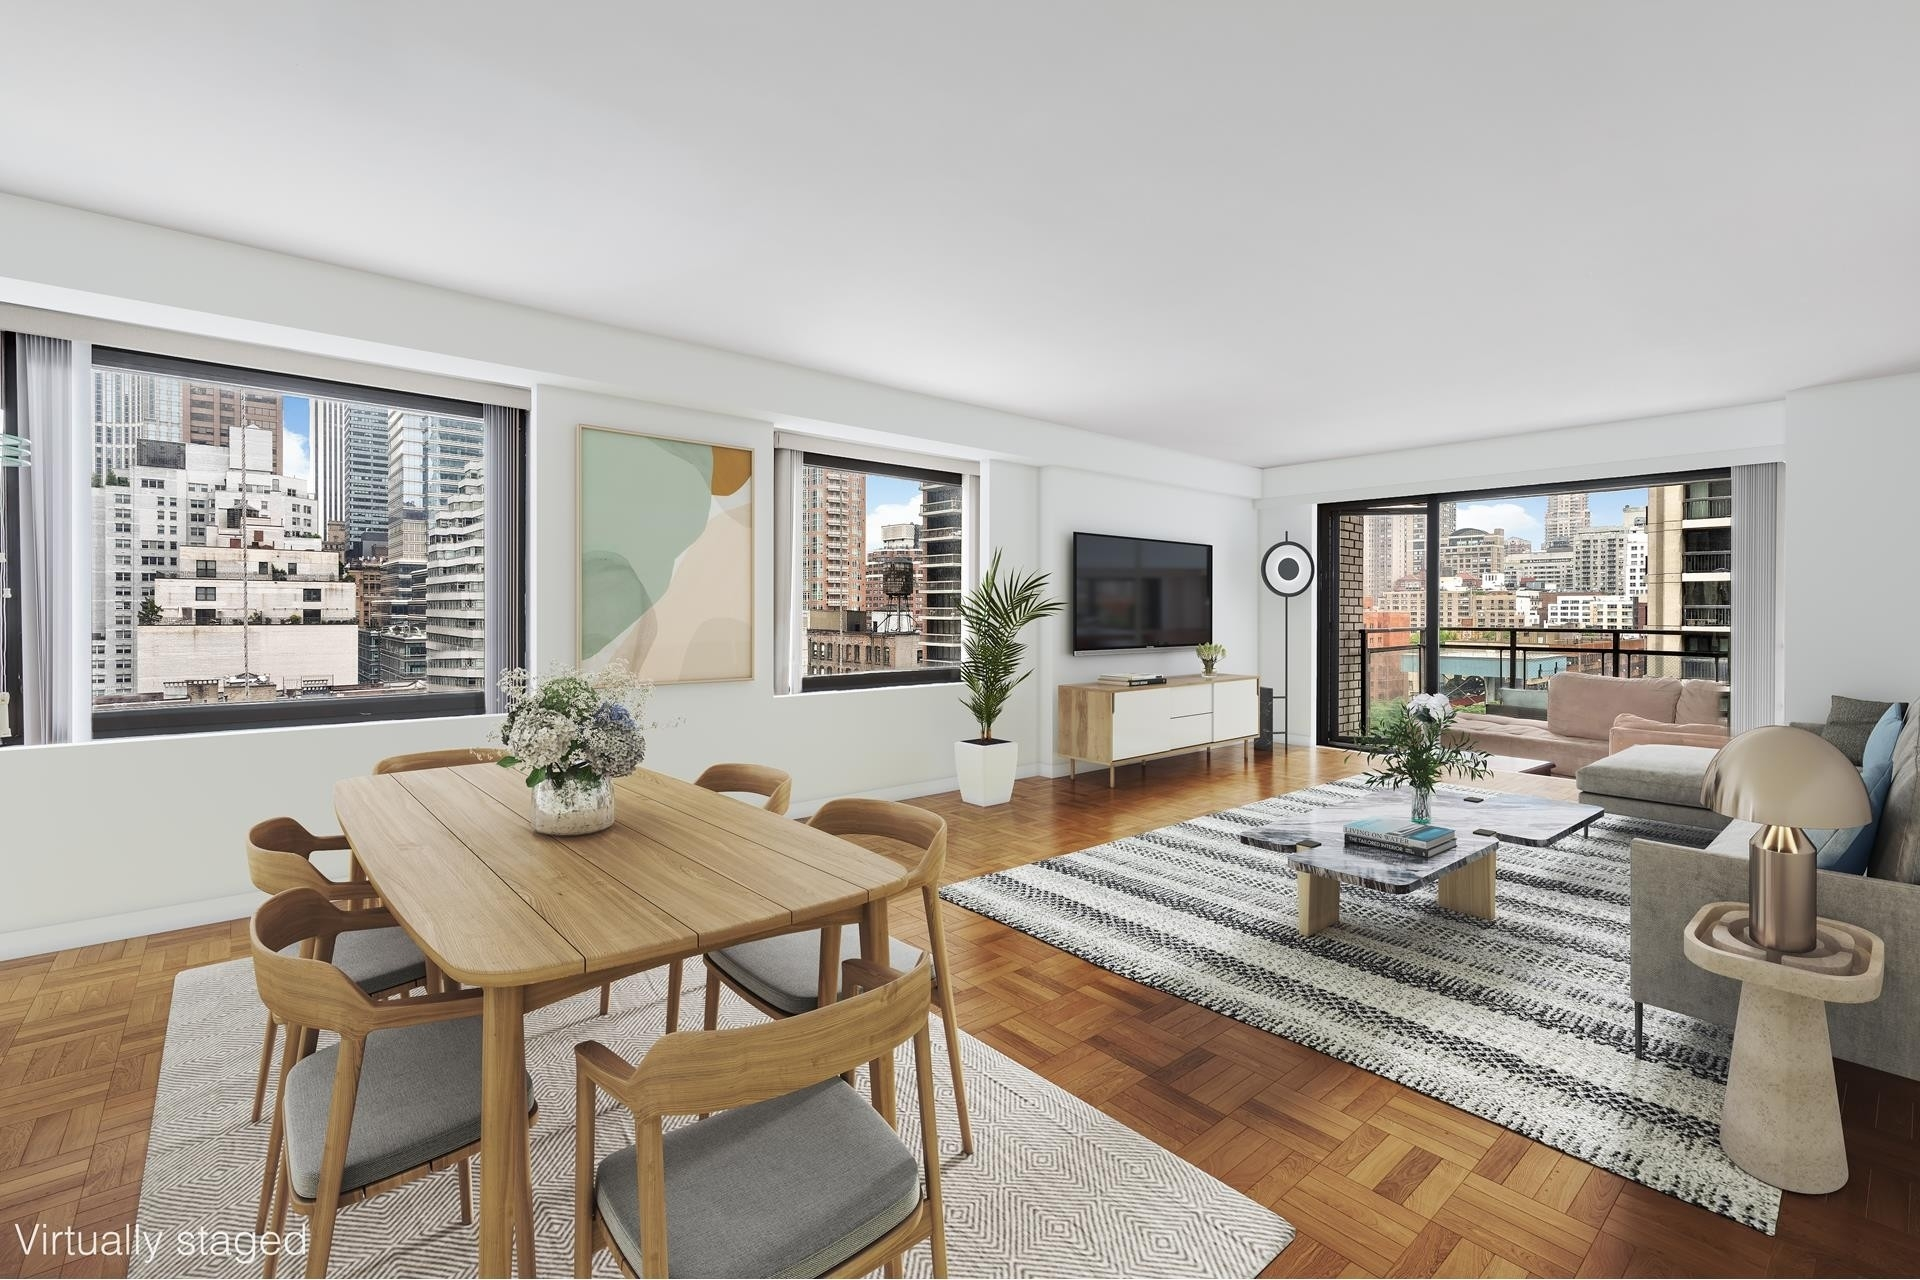 Co-op Properties for Sale at 303 East 57th St, 9G Midtown East, New York, NY 10022